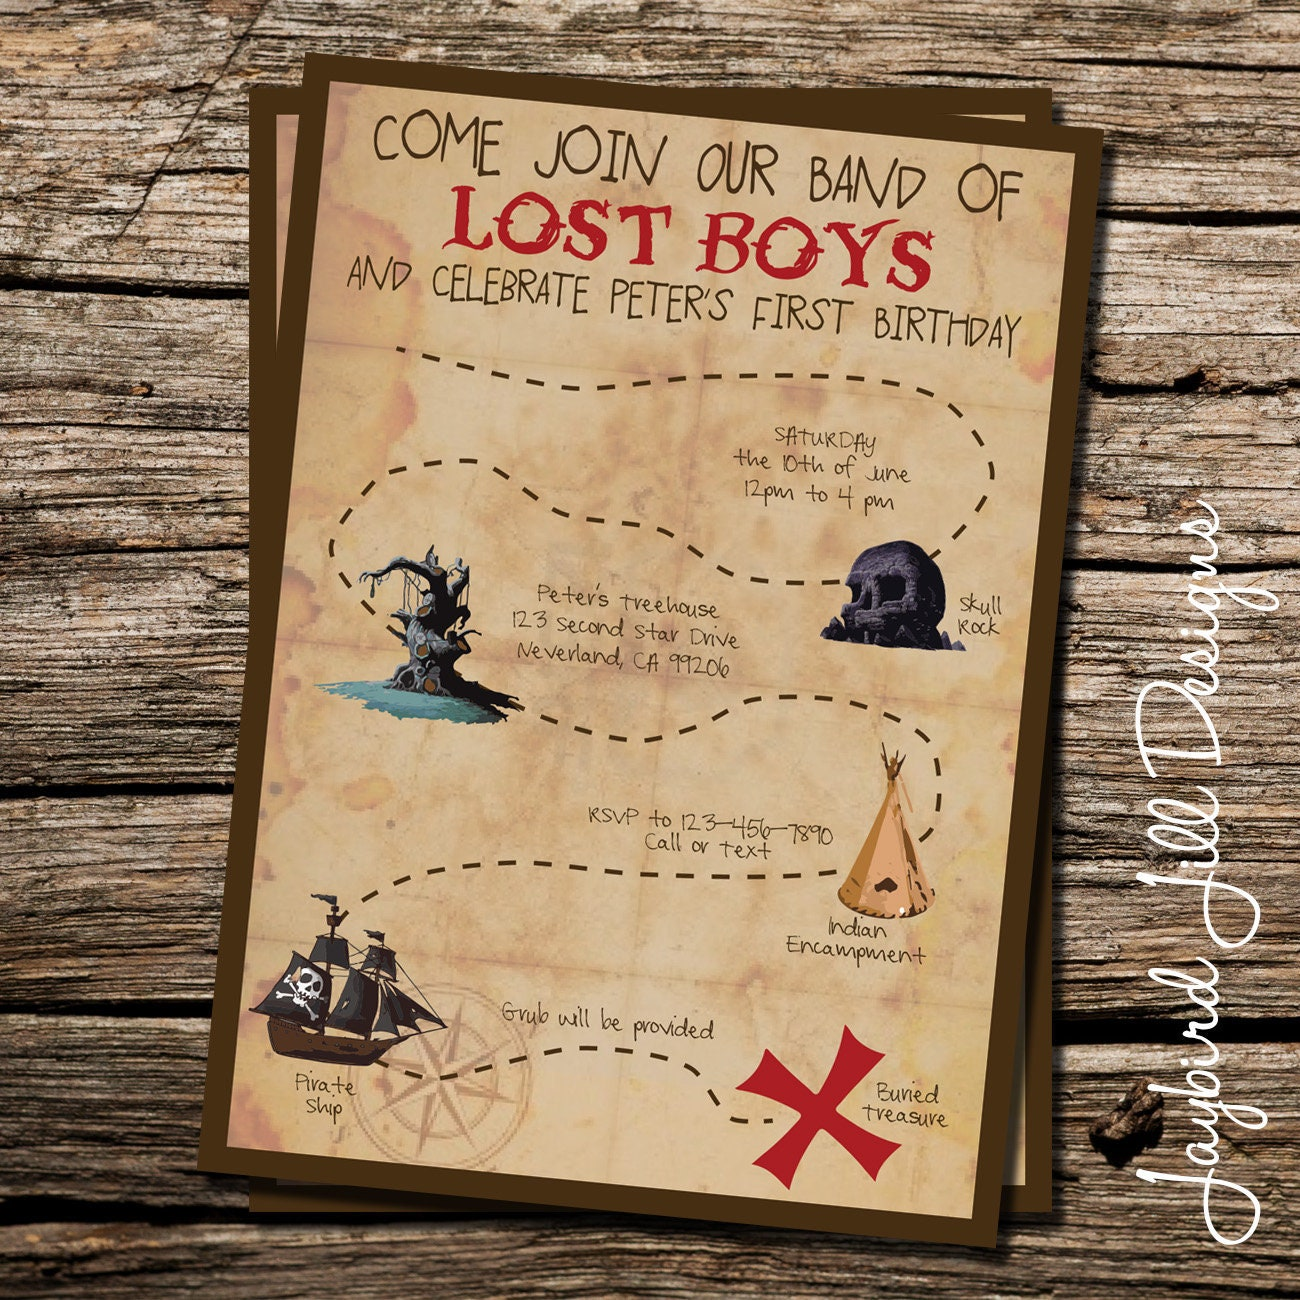 first birthday invitation template india%0A Lost Boys Birthday Invitation   Peter Pan Neverland Party